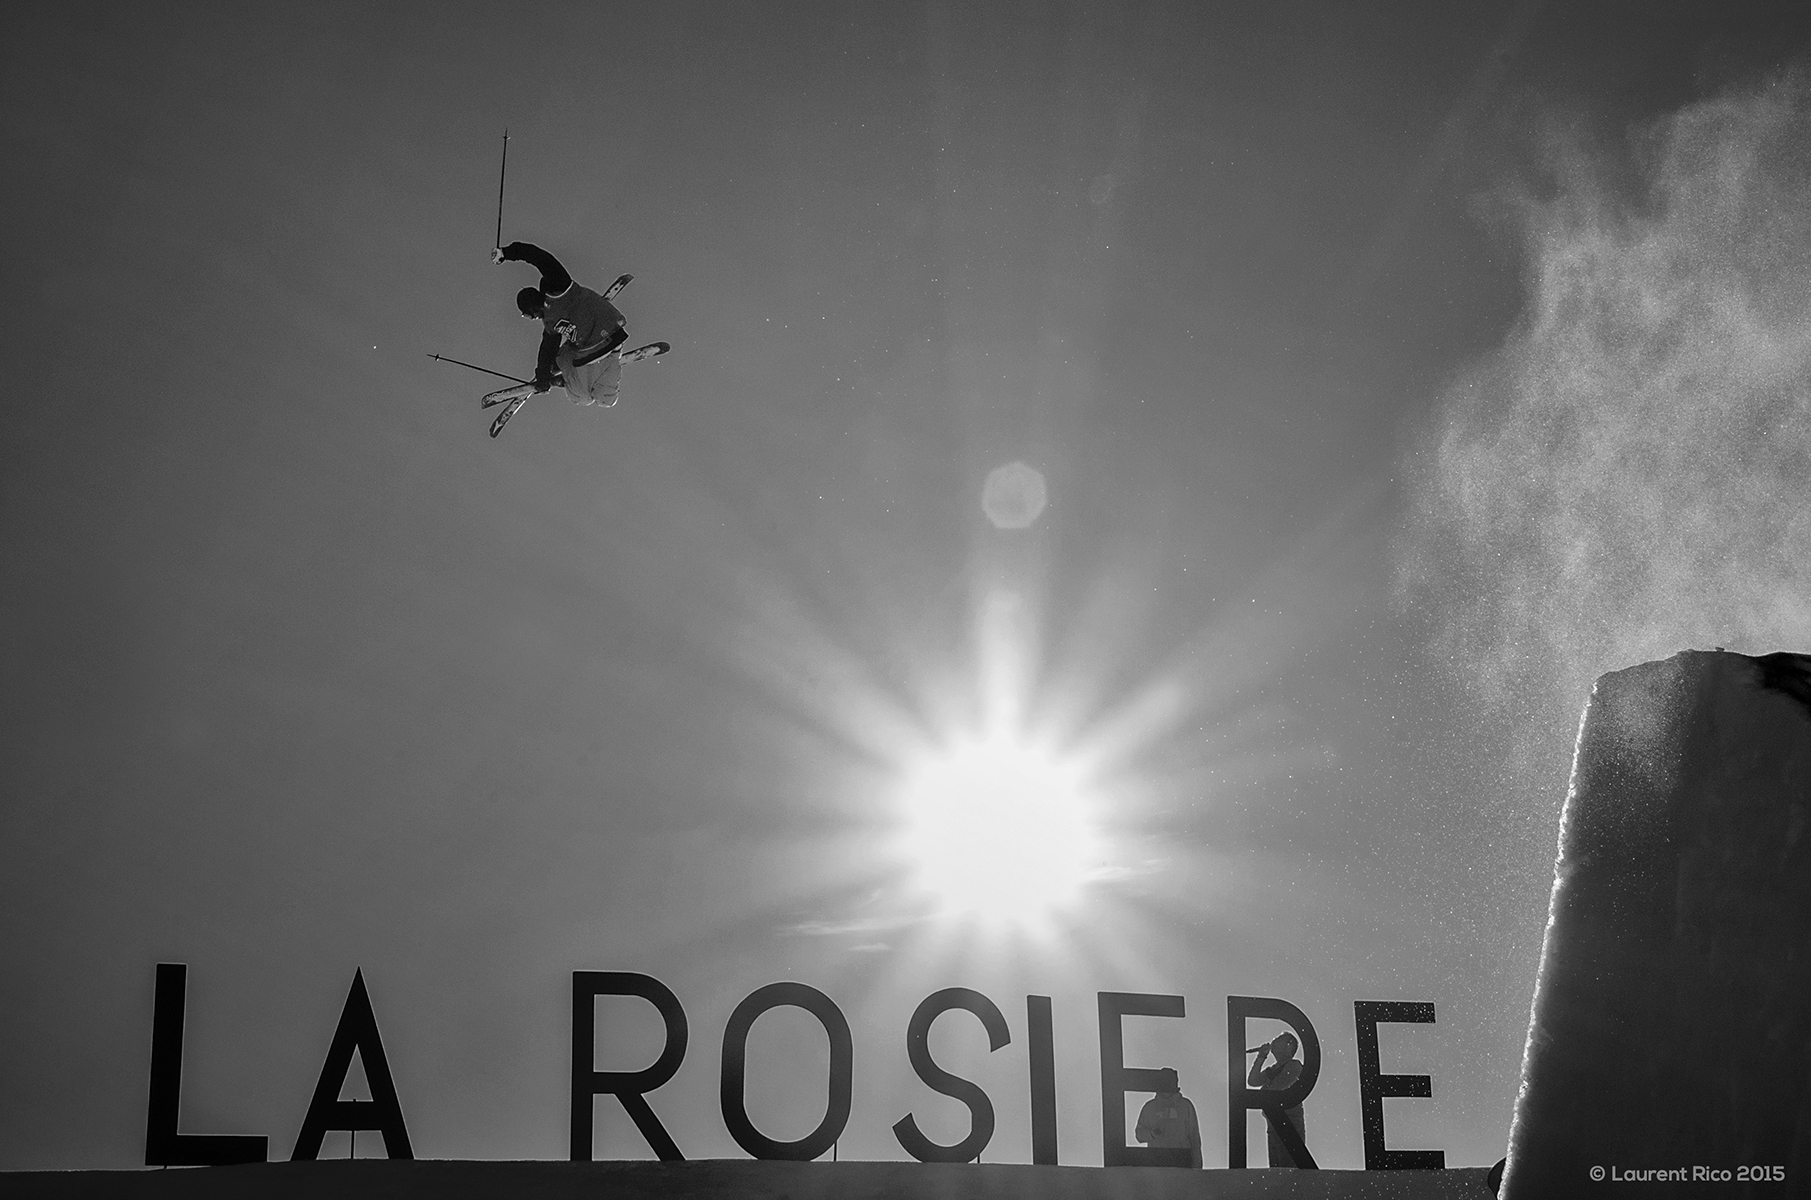 laurent rico-production- photographe-realisateur-reportage-evenementiel-freeski-playoffs-nissan-la rosiere-stations-savoie-grenoble